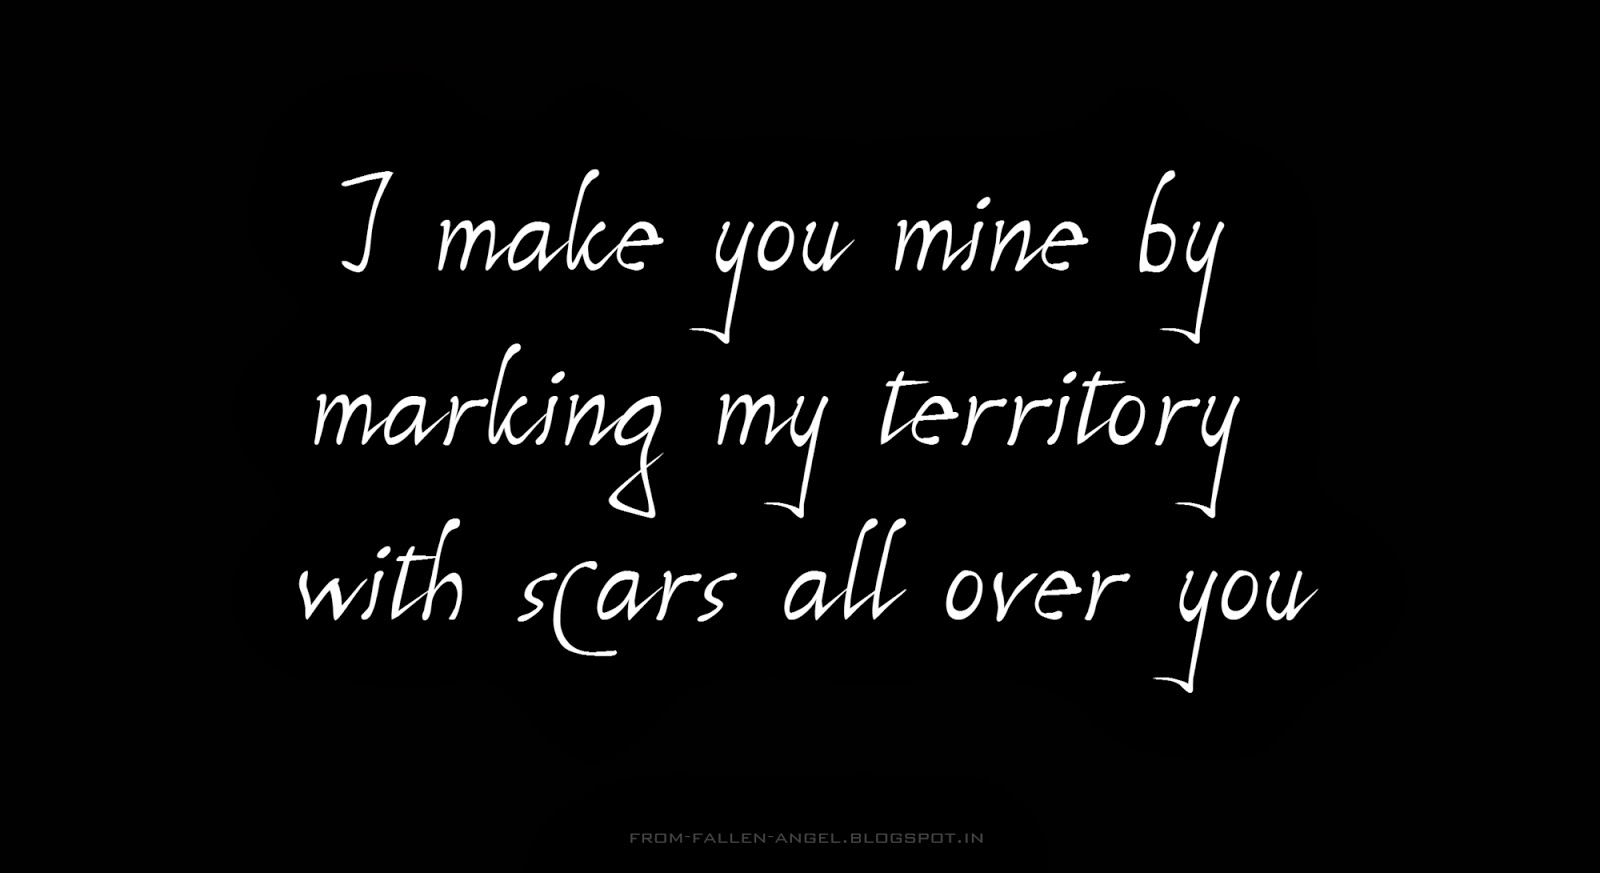 I make you mine by marking my territory with scars all over you